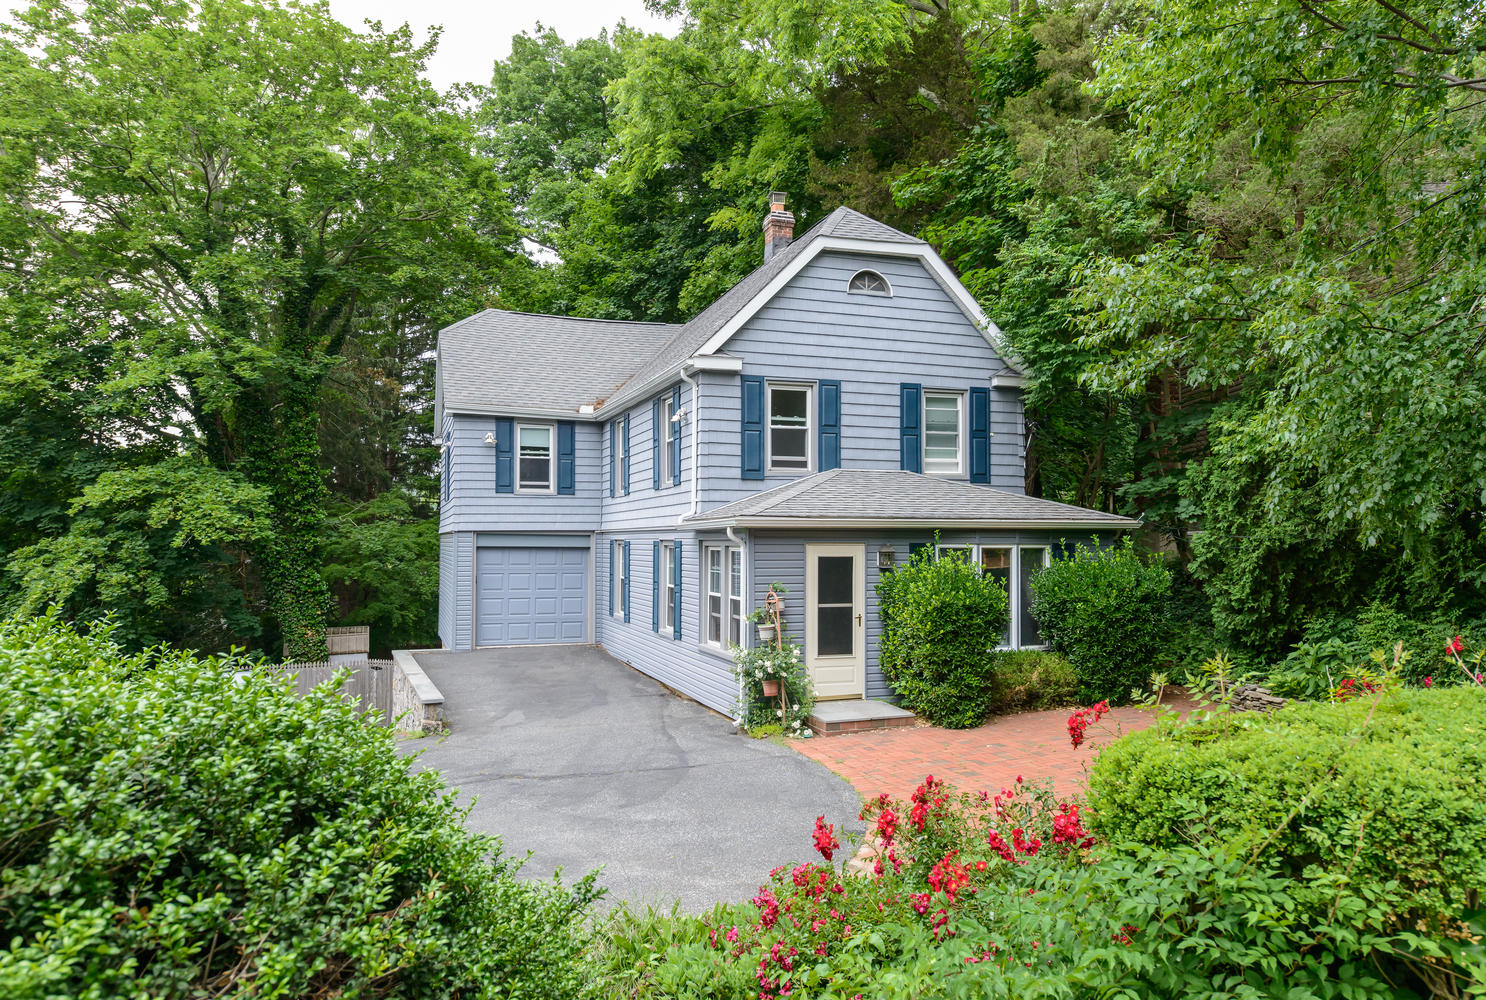 Single Family Home for Sale at Colonial 59 Little Neck Rd Centerport, New York 11721 United States